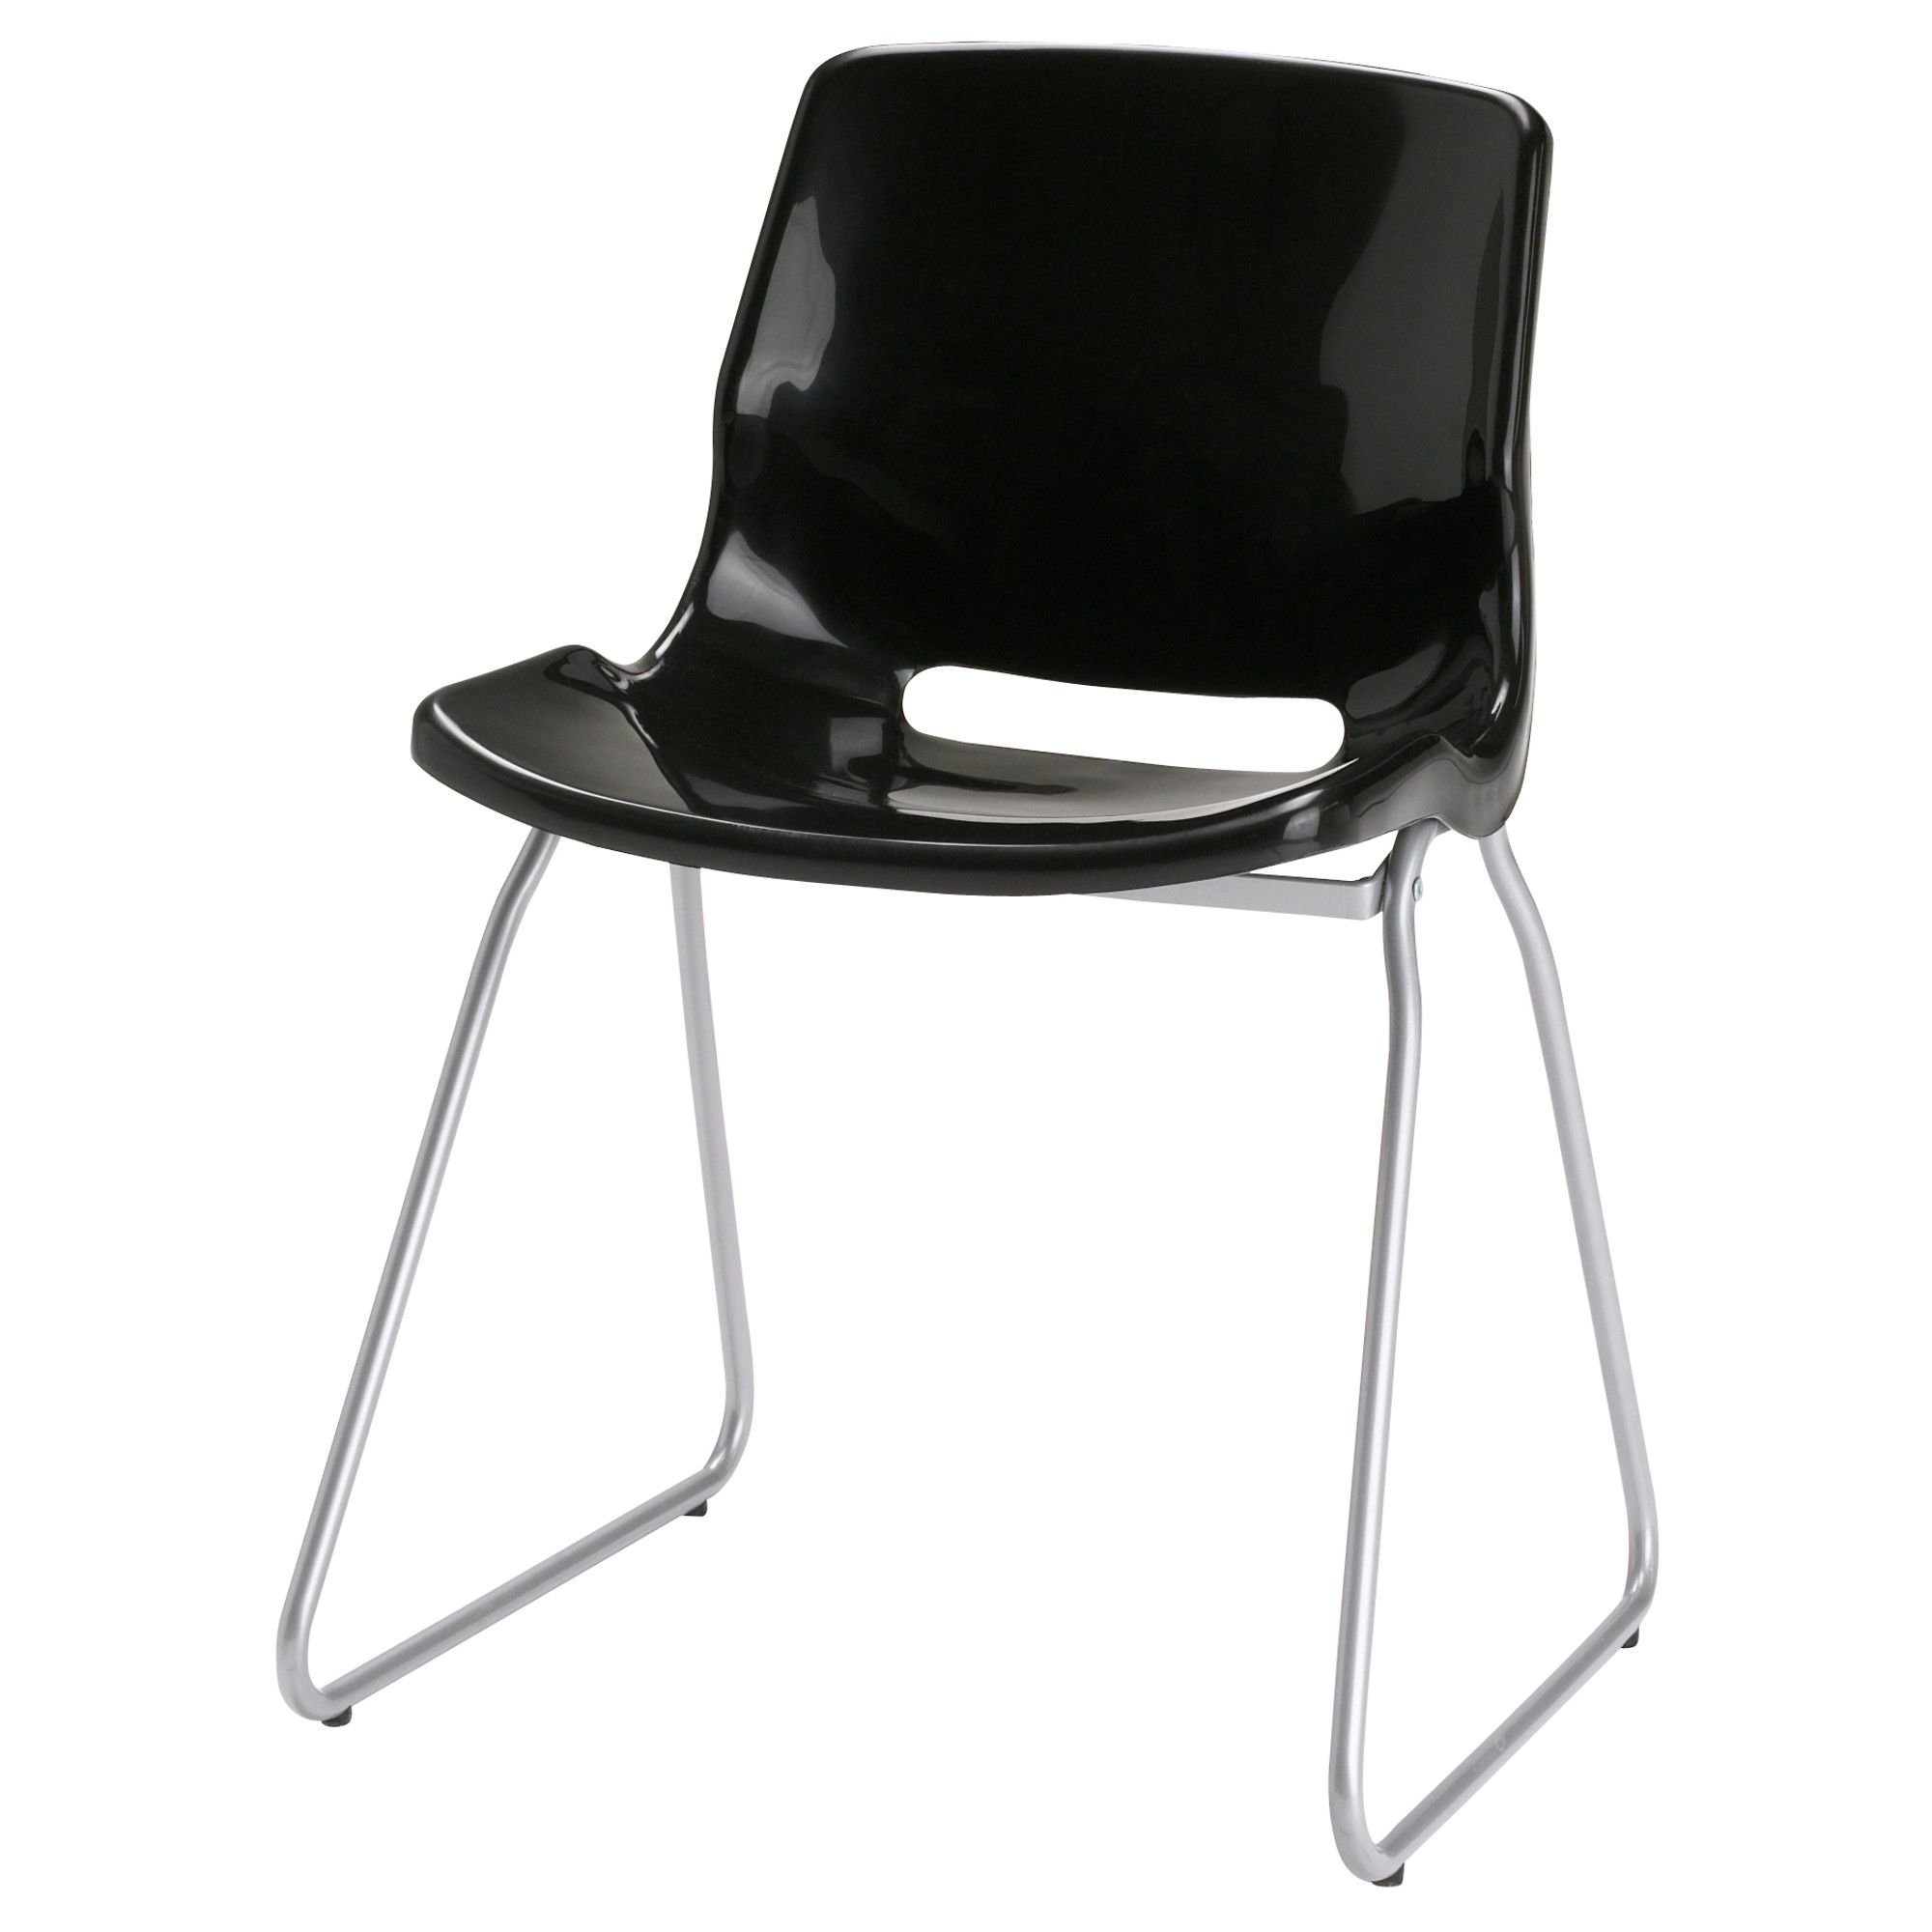 Not Eames IkeaOkayAgainIt's Chair Visitor Snille Black KT1lJcF3